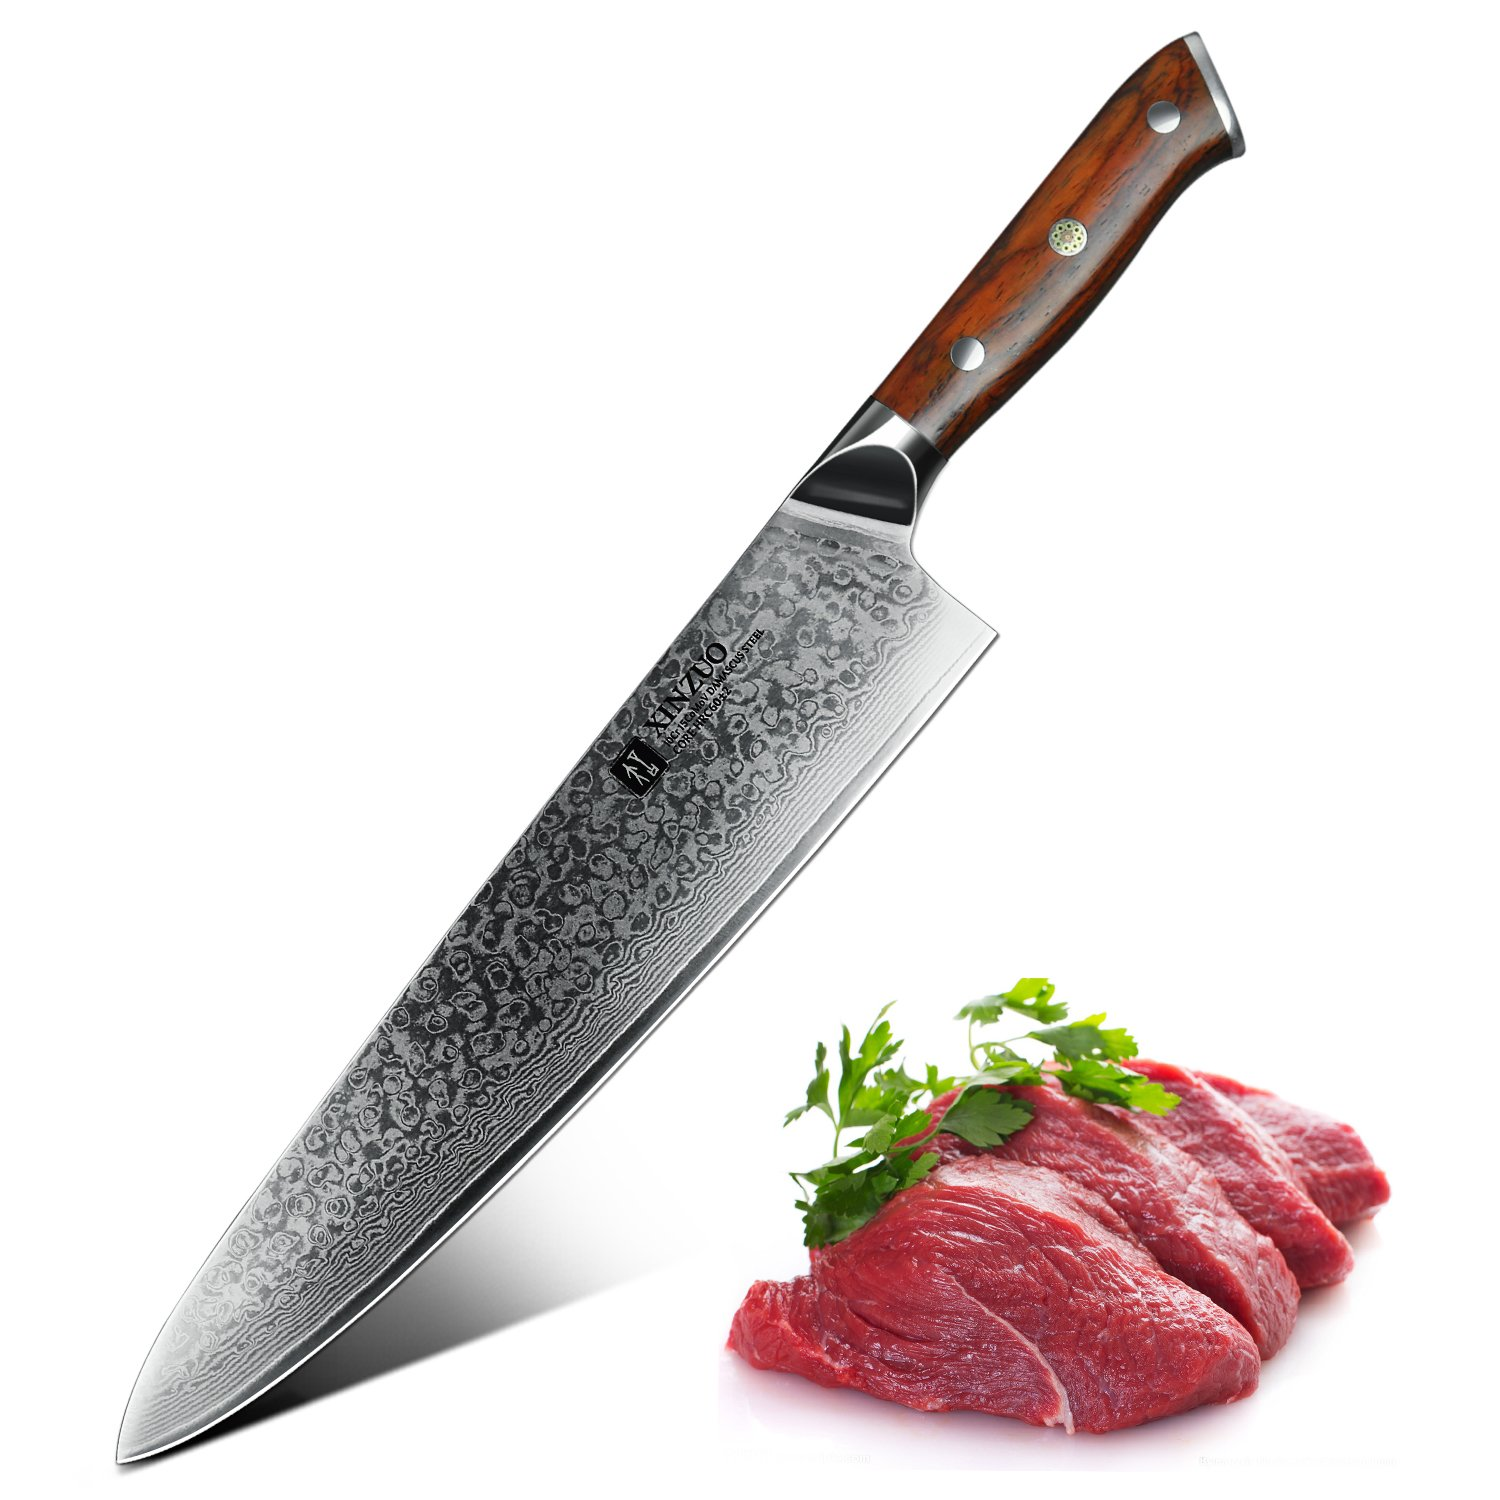 XINZUO 10 inches Damascus Chef Knife Kitchen Knife Very Sharp Gyutou Knife Stainless Steel Fashion Professional Chef's Knife with Rosewood Handle (10 inches)